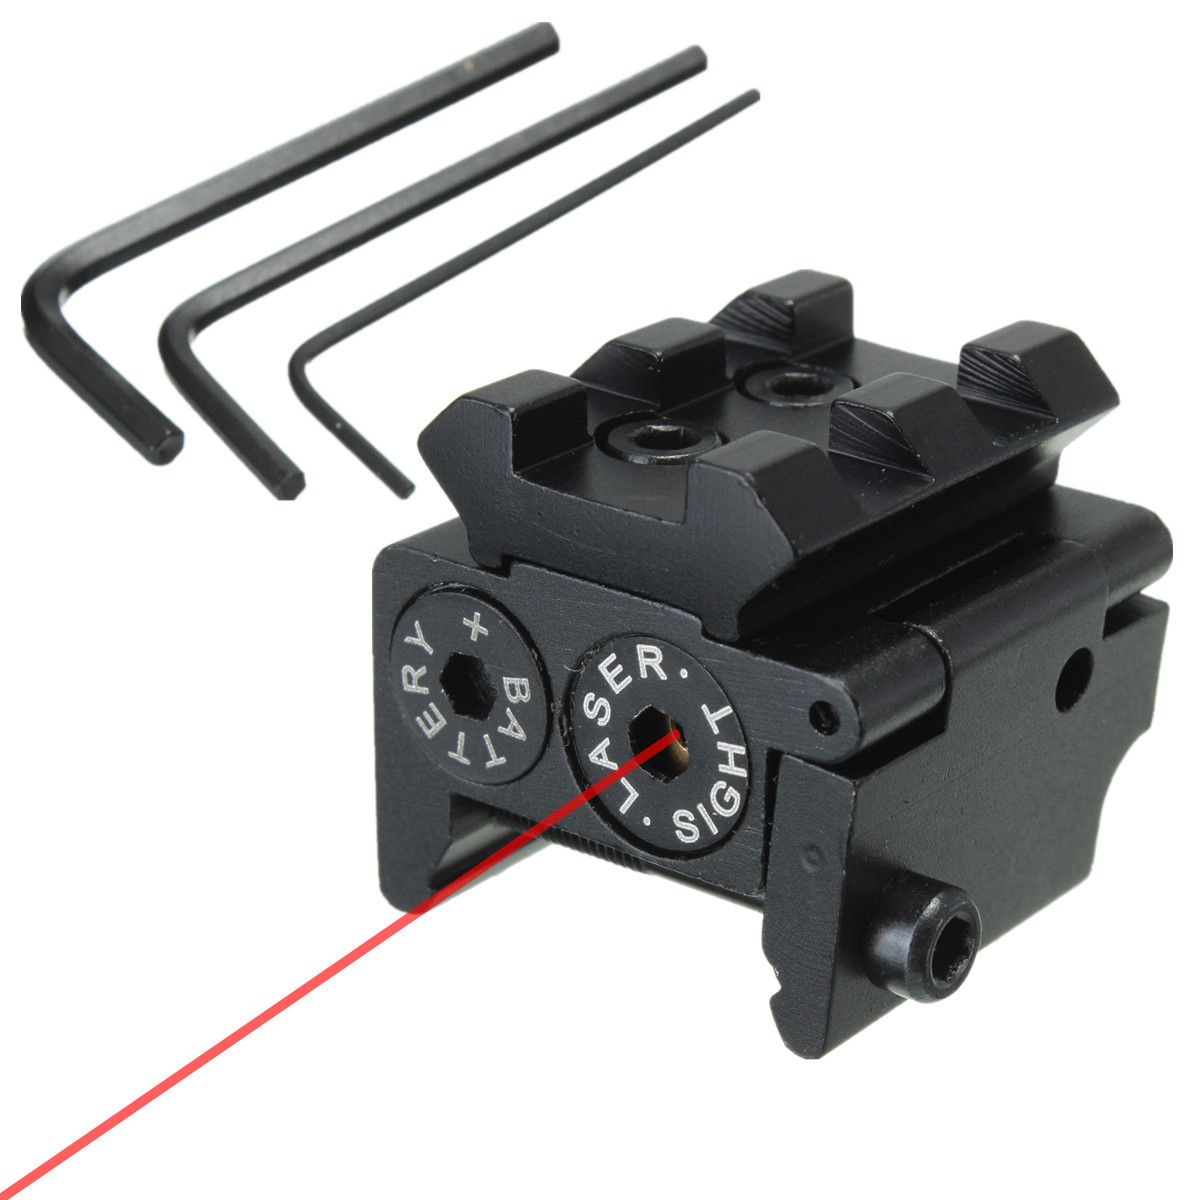 Mini Compact Tactical Red Dot Laser Bore Sight Scope With 20mm Picatinny Rail Mount 980nm 100mw ir laser module with dot laser beam together with power adapter plug and use